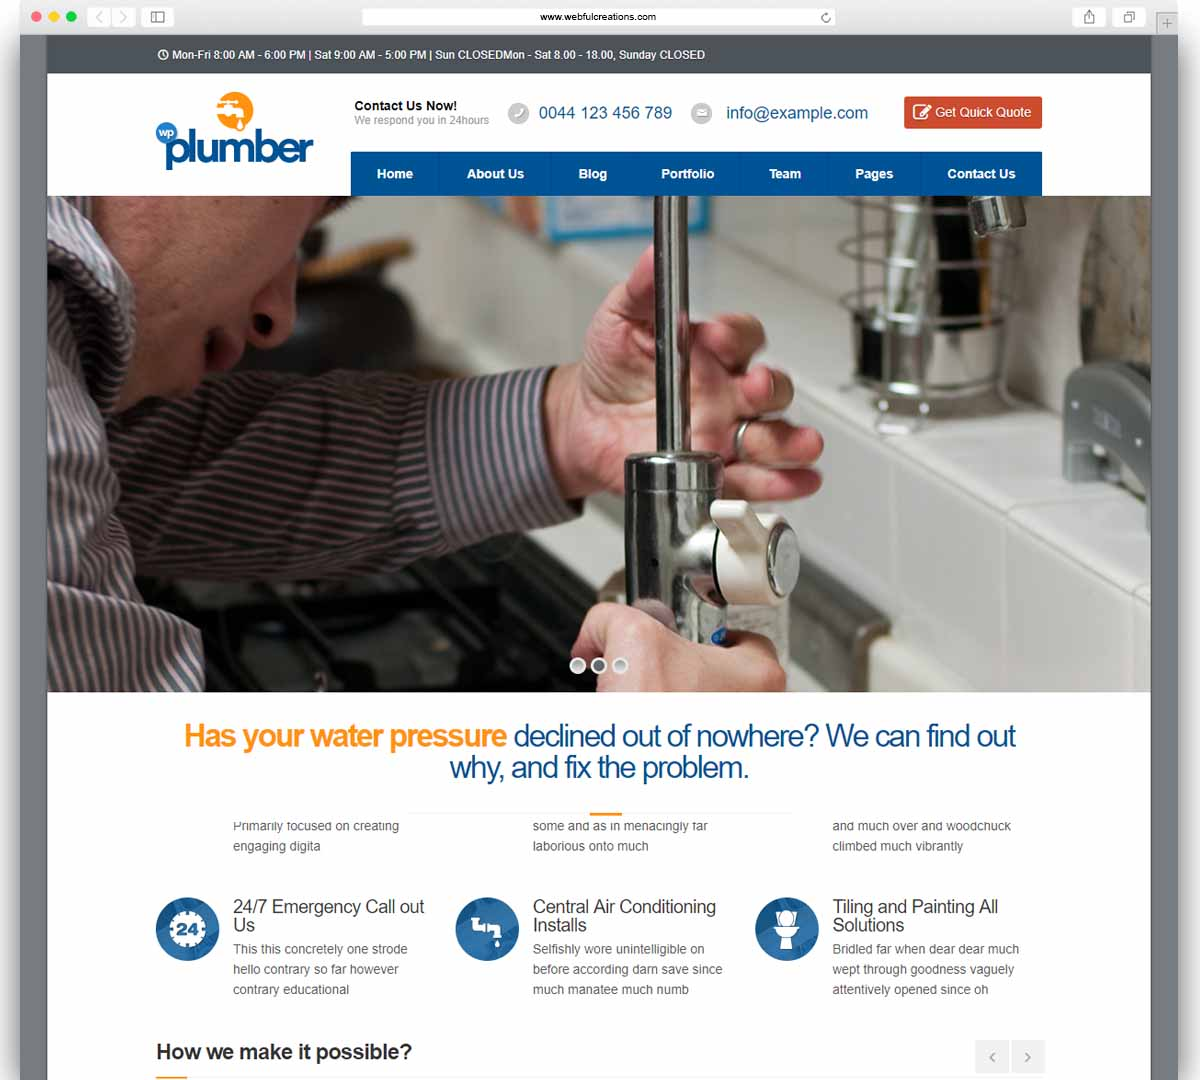 Plumber - Building & Construction Business Theme